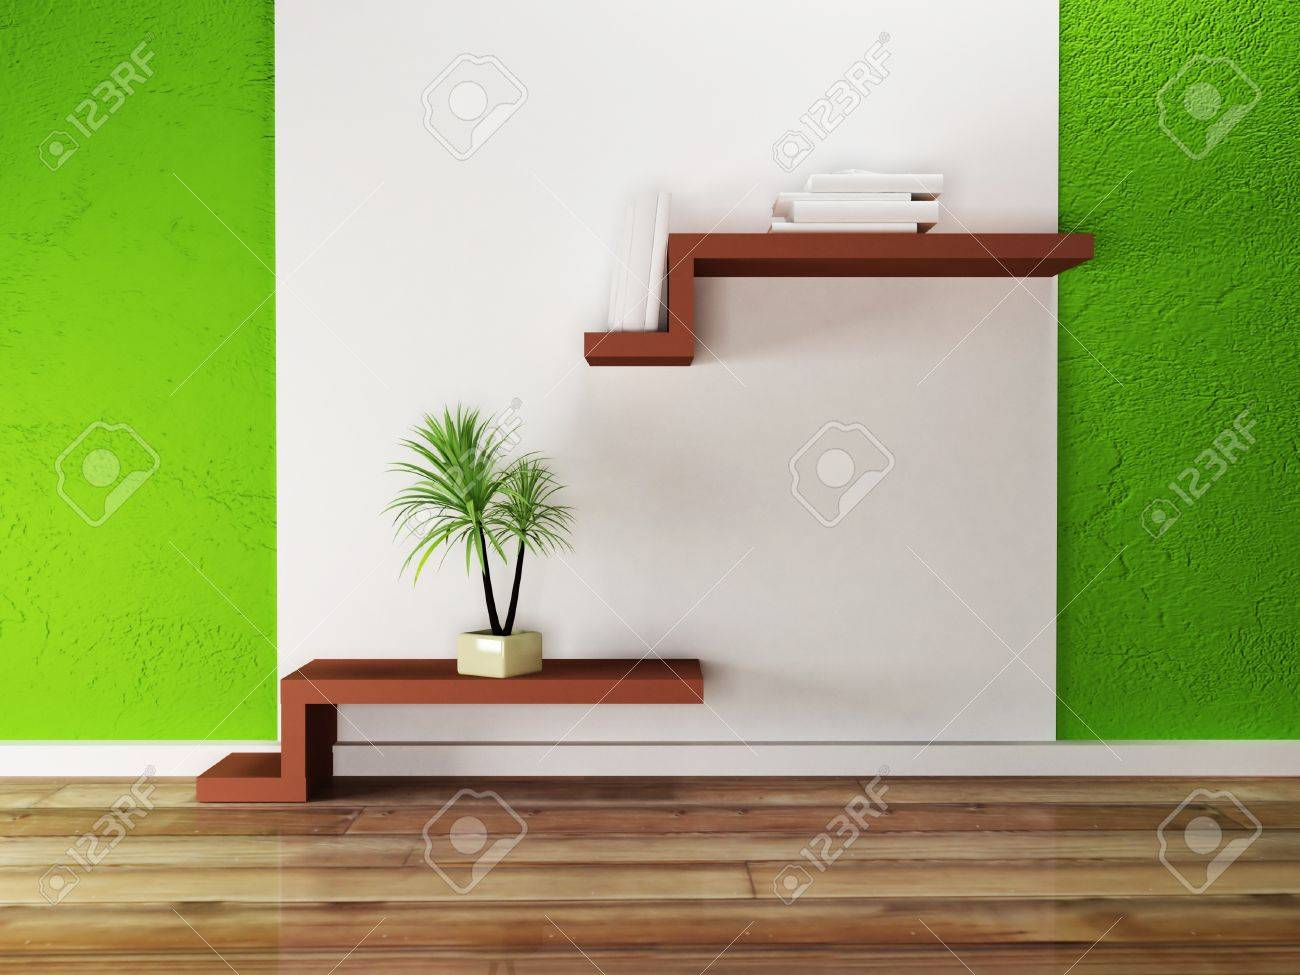 creative shelf on the wall and a palm, rendering Stock Photo - 17358434